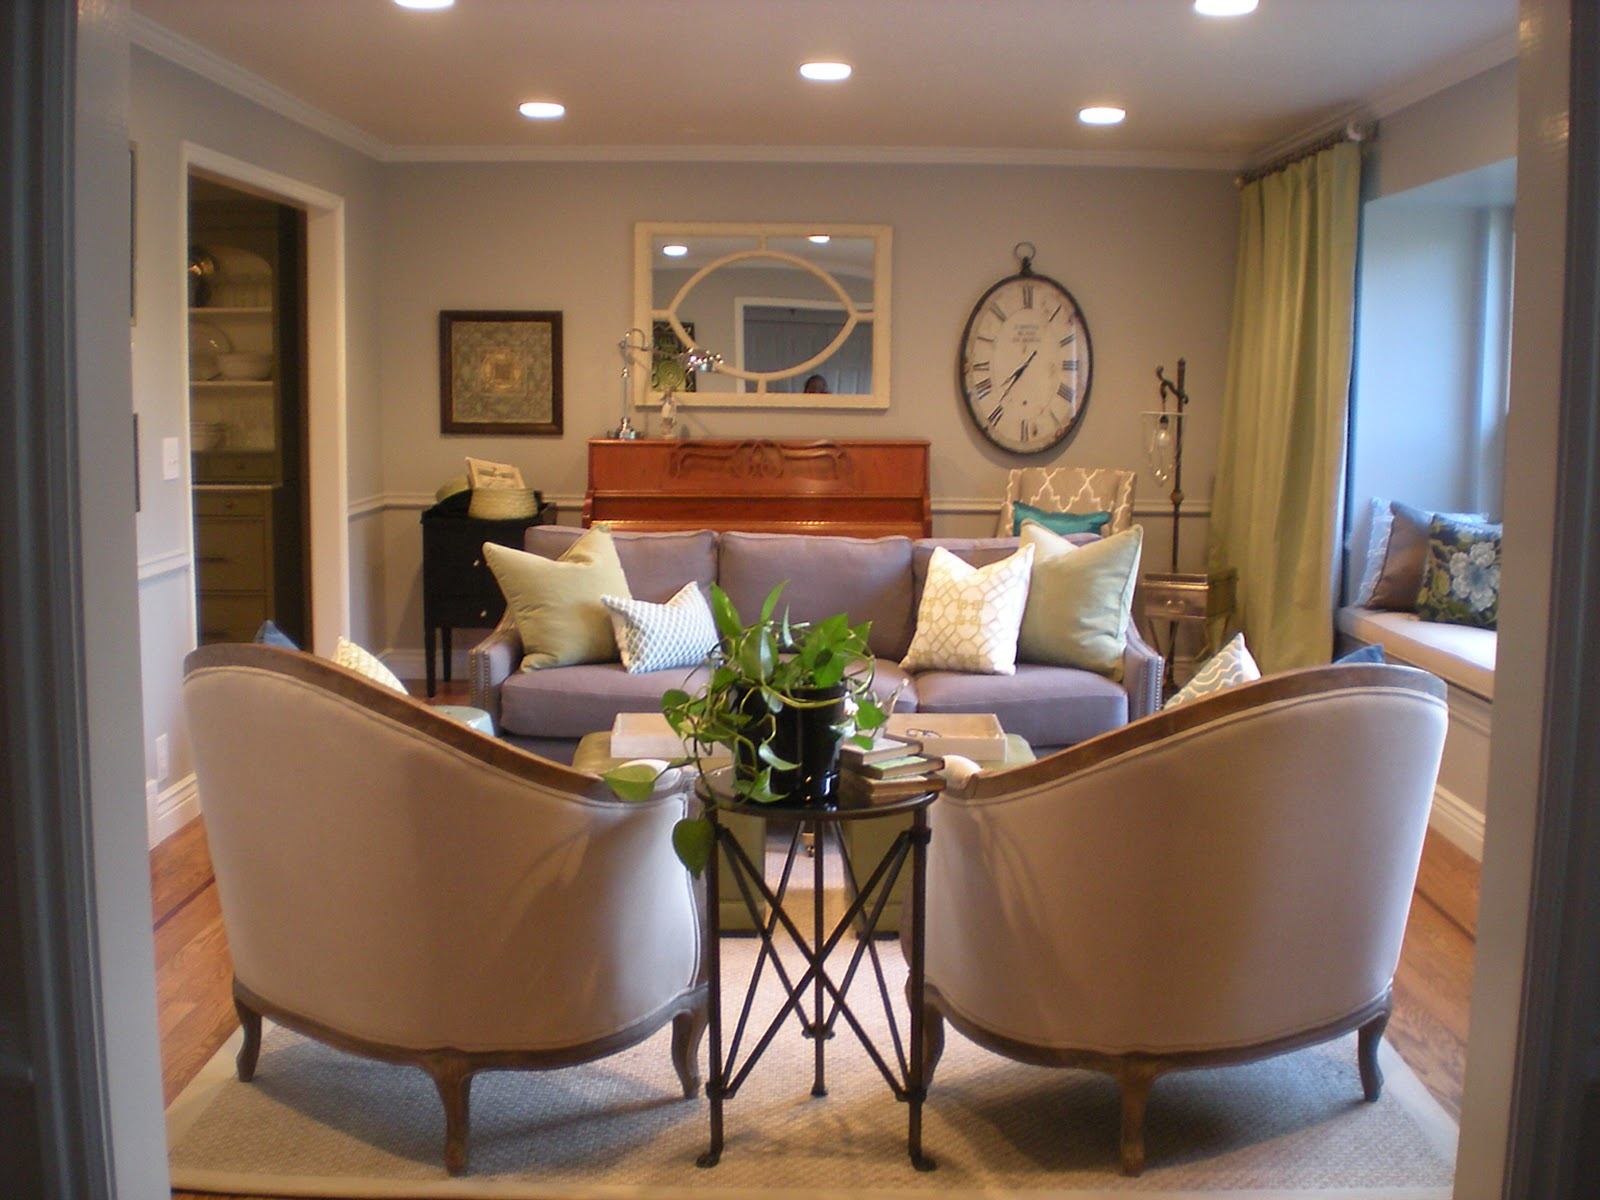 sitting room and dining room designs | design dump: before + after: formal living room dining ...